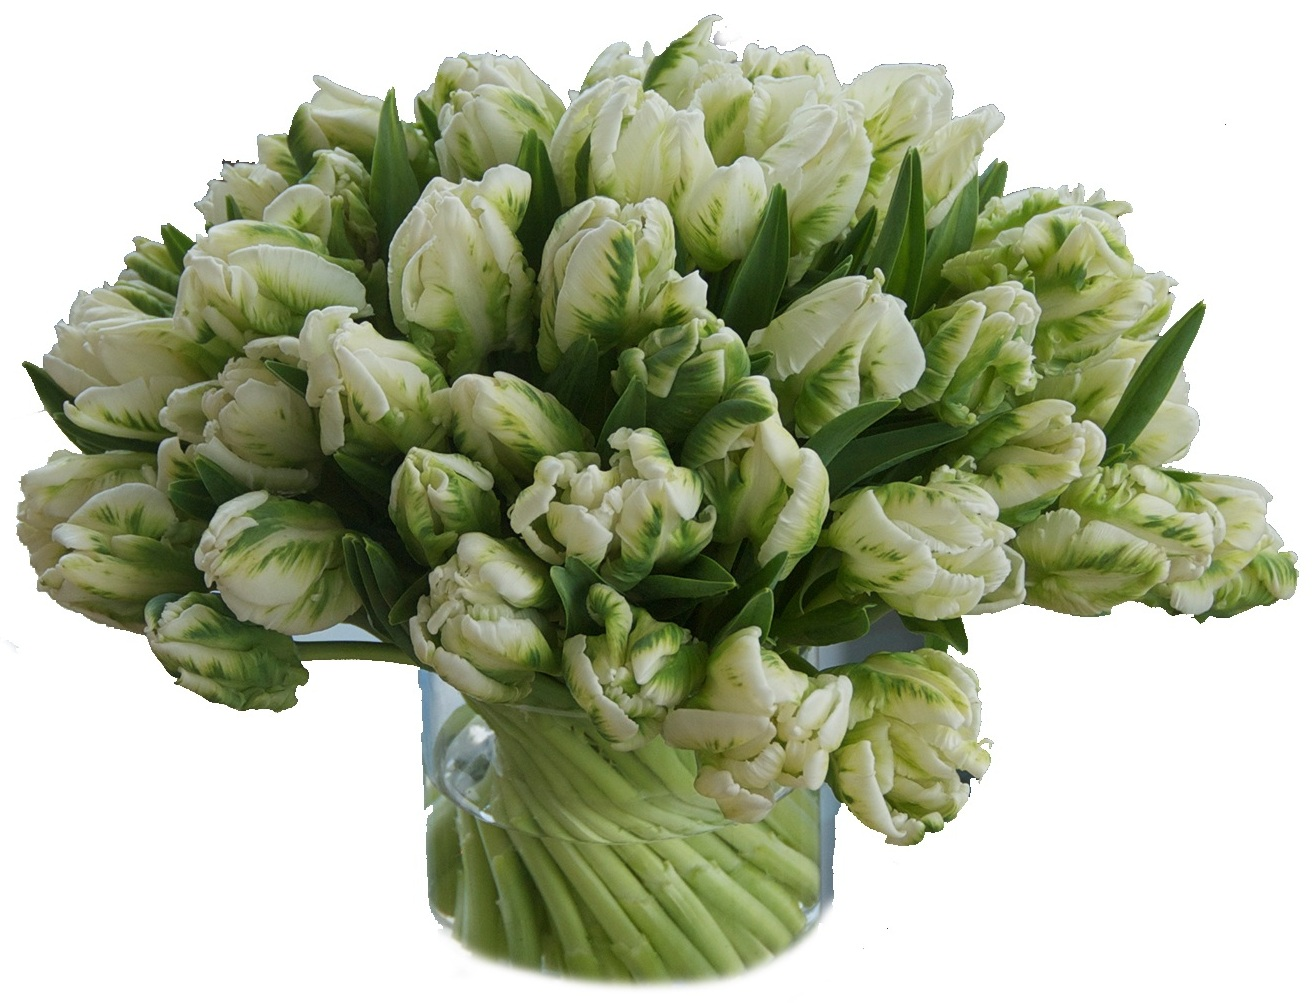 Green Parrot Tulips